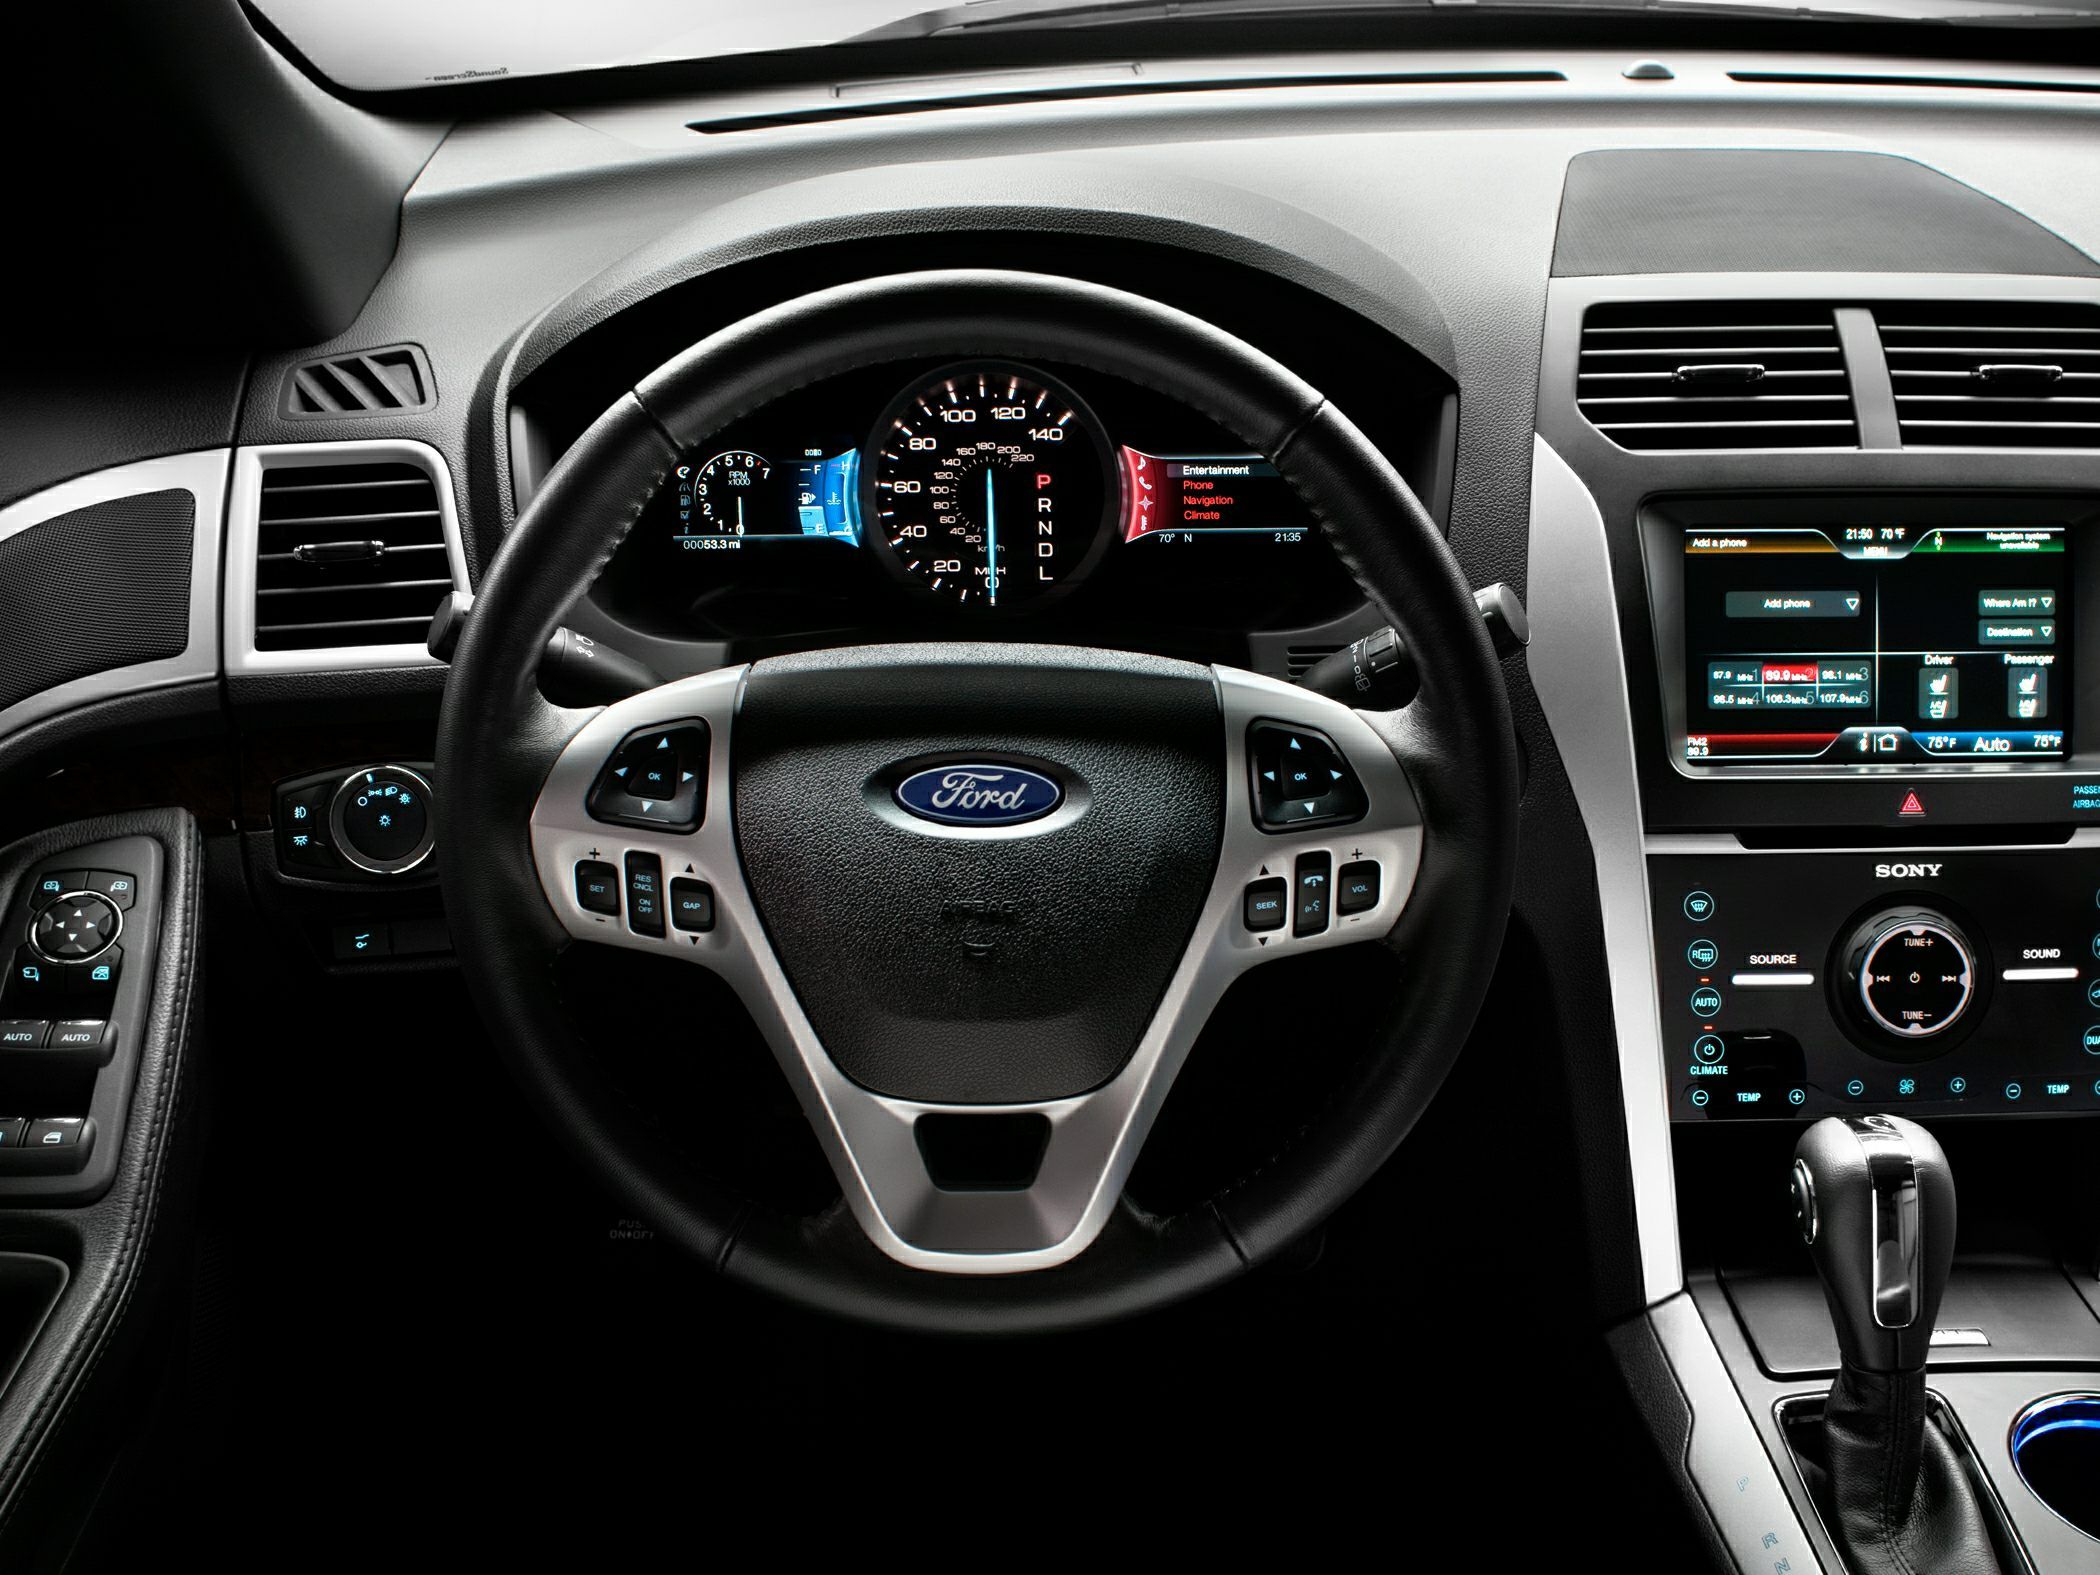 interior of ford explorer 2014 - Ford Explorer Black 2015